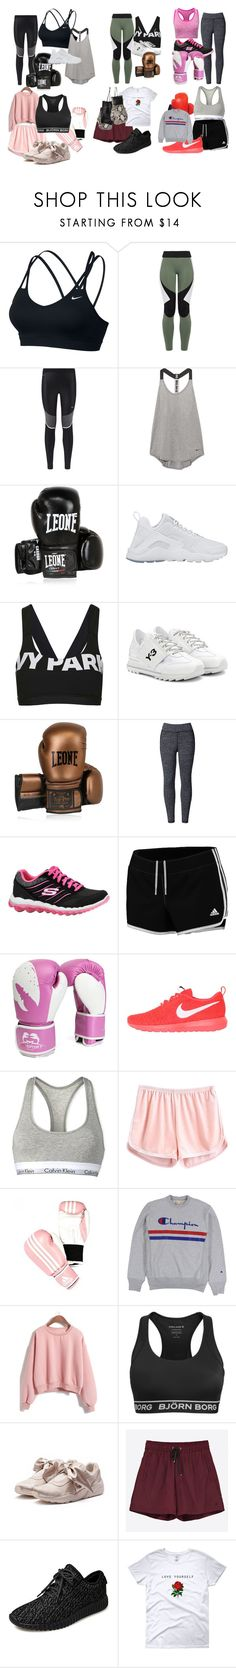 """""""boxing"""" by lolianalobo on Polyvore featuring NIKE, Charli Cohen, Leone 1947, Topshop, Y-3, WithChic, Skechers, adidas, Everlast y Calvin Klein"""